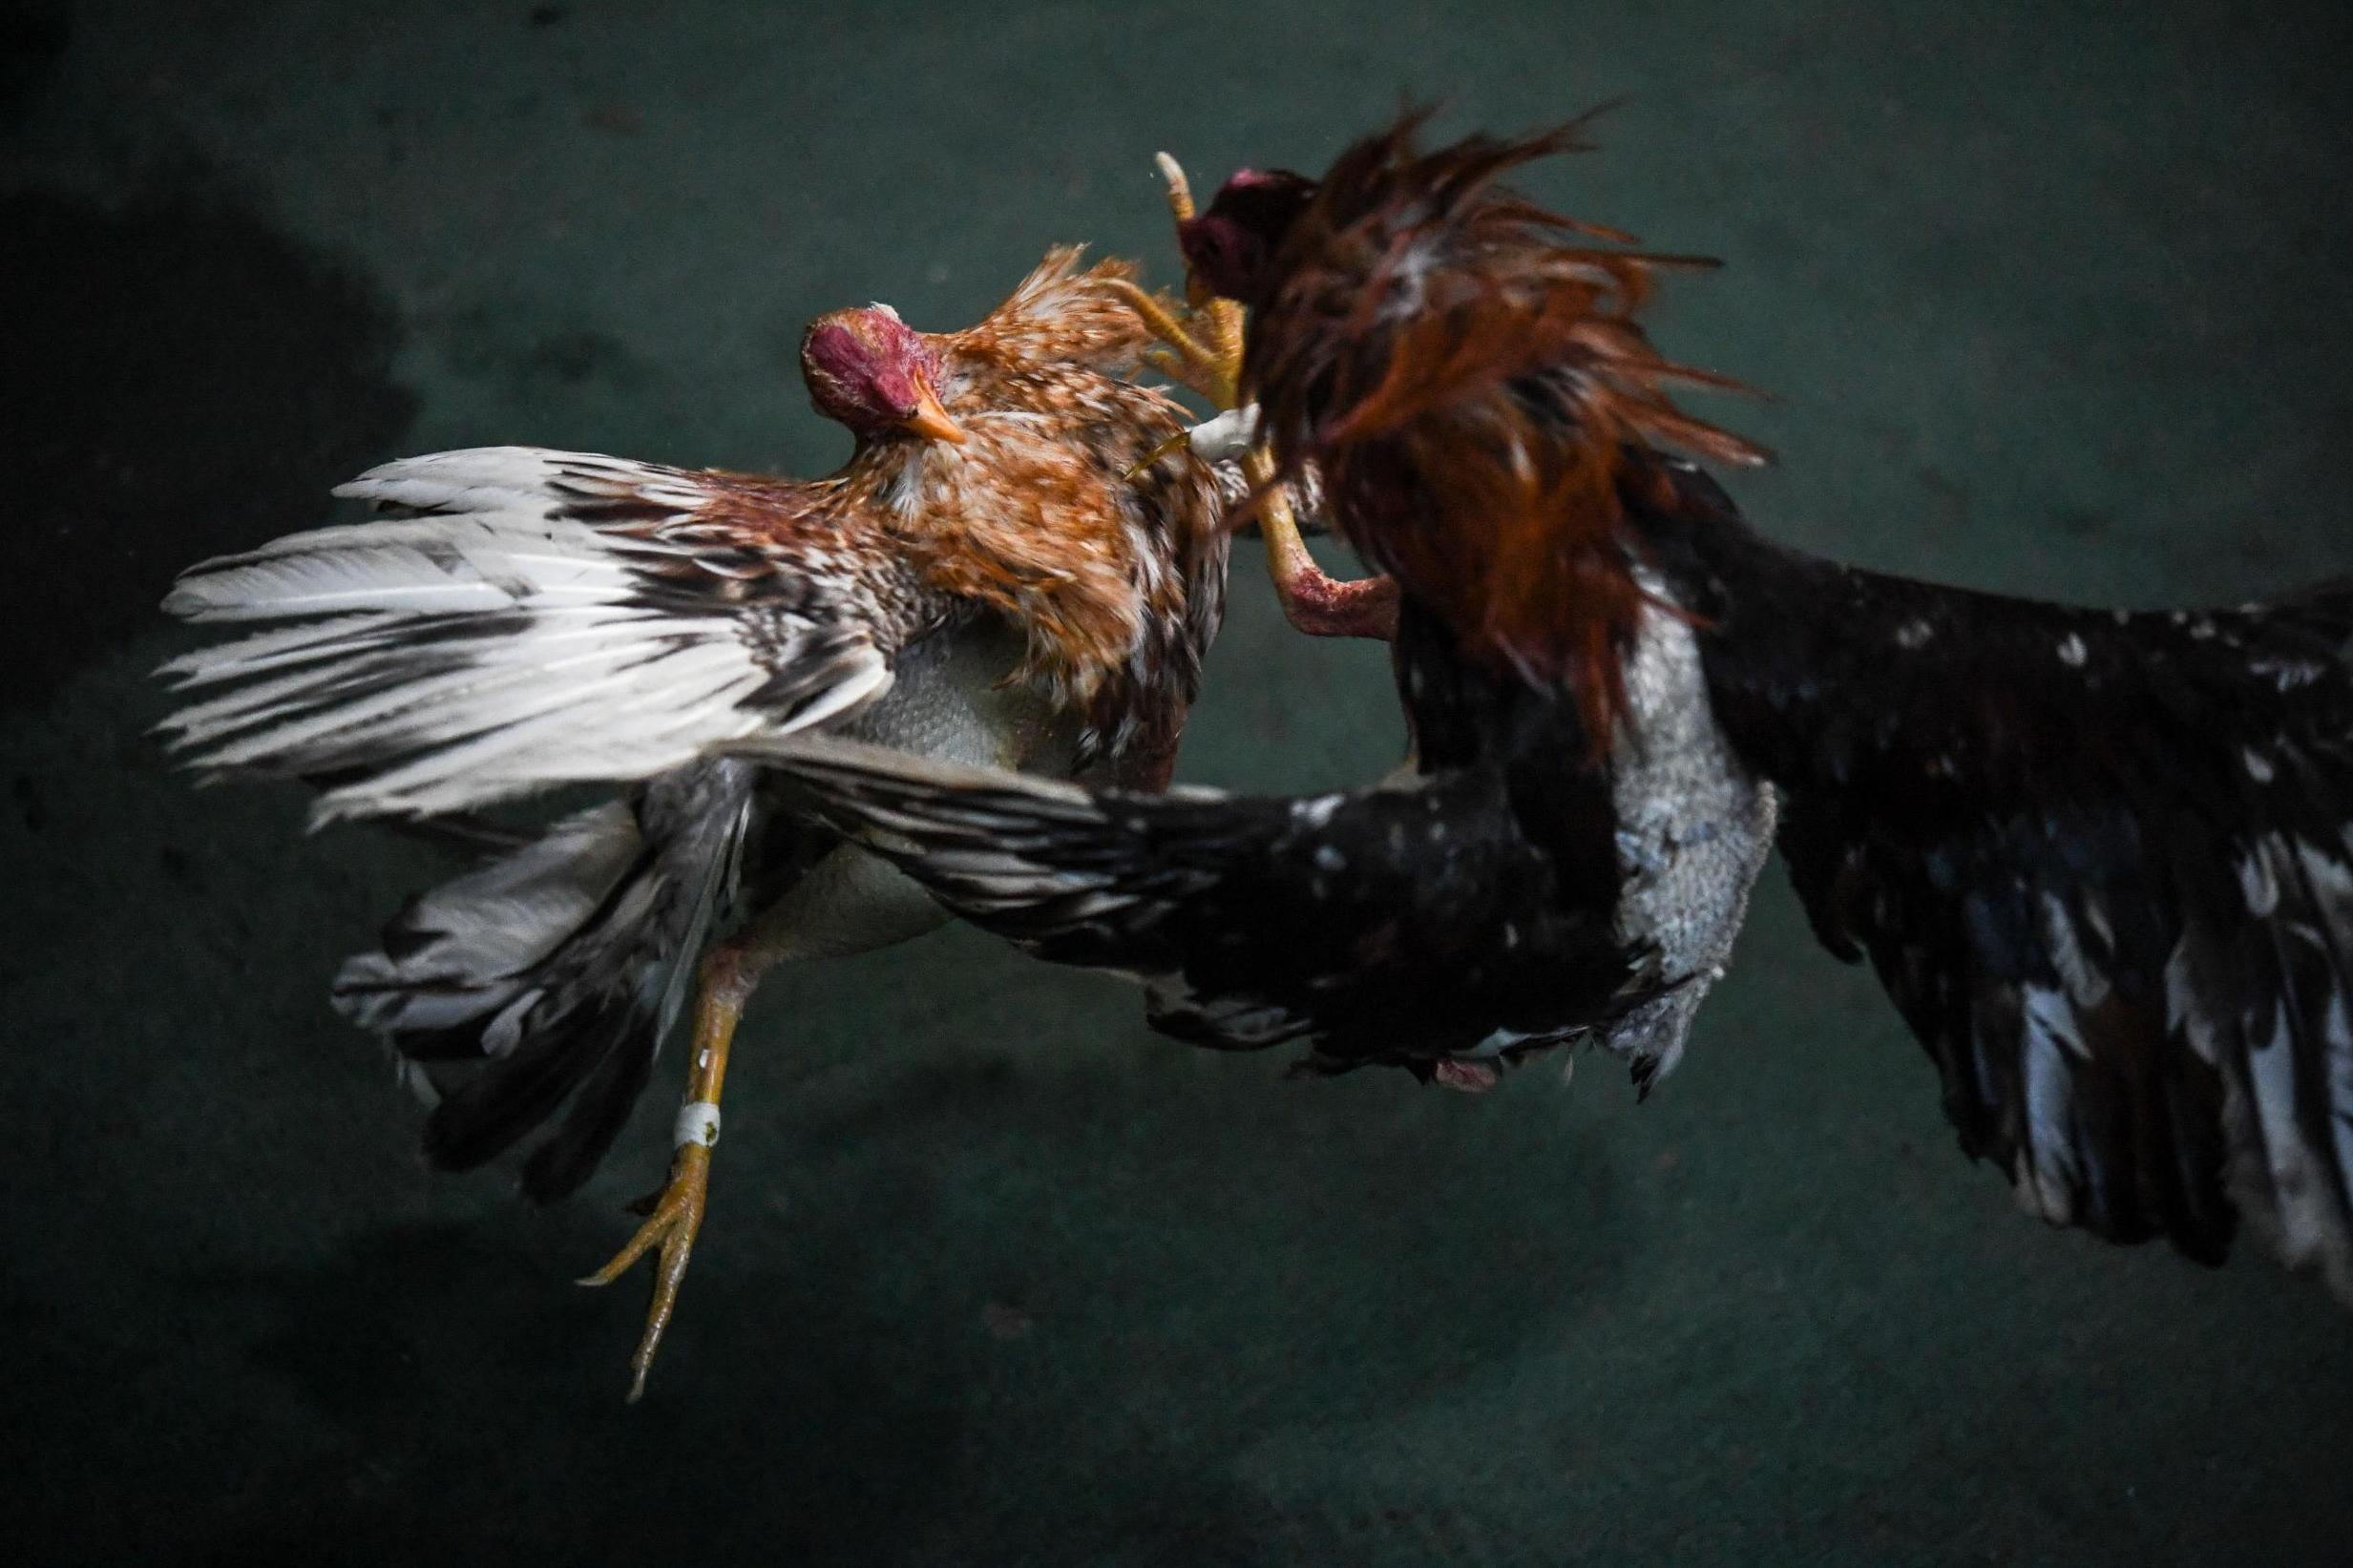 Police officer killed in Philippines after being slashed by rooster at unlawful cockfight